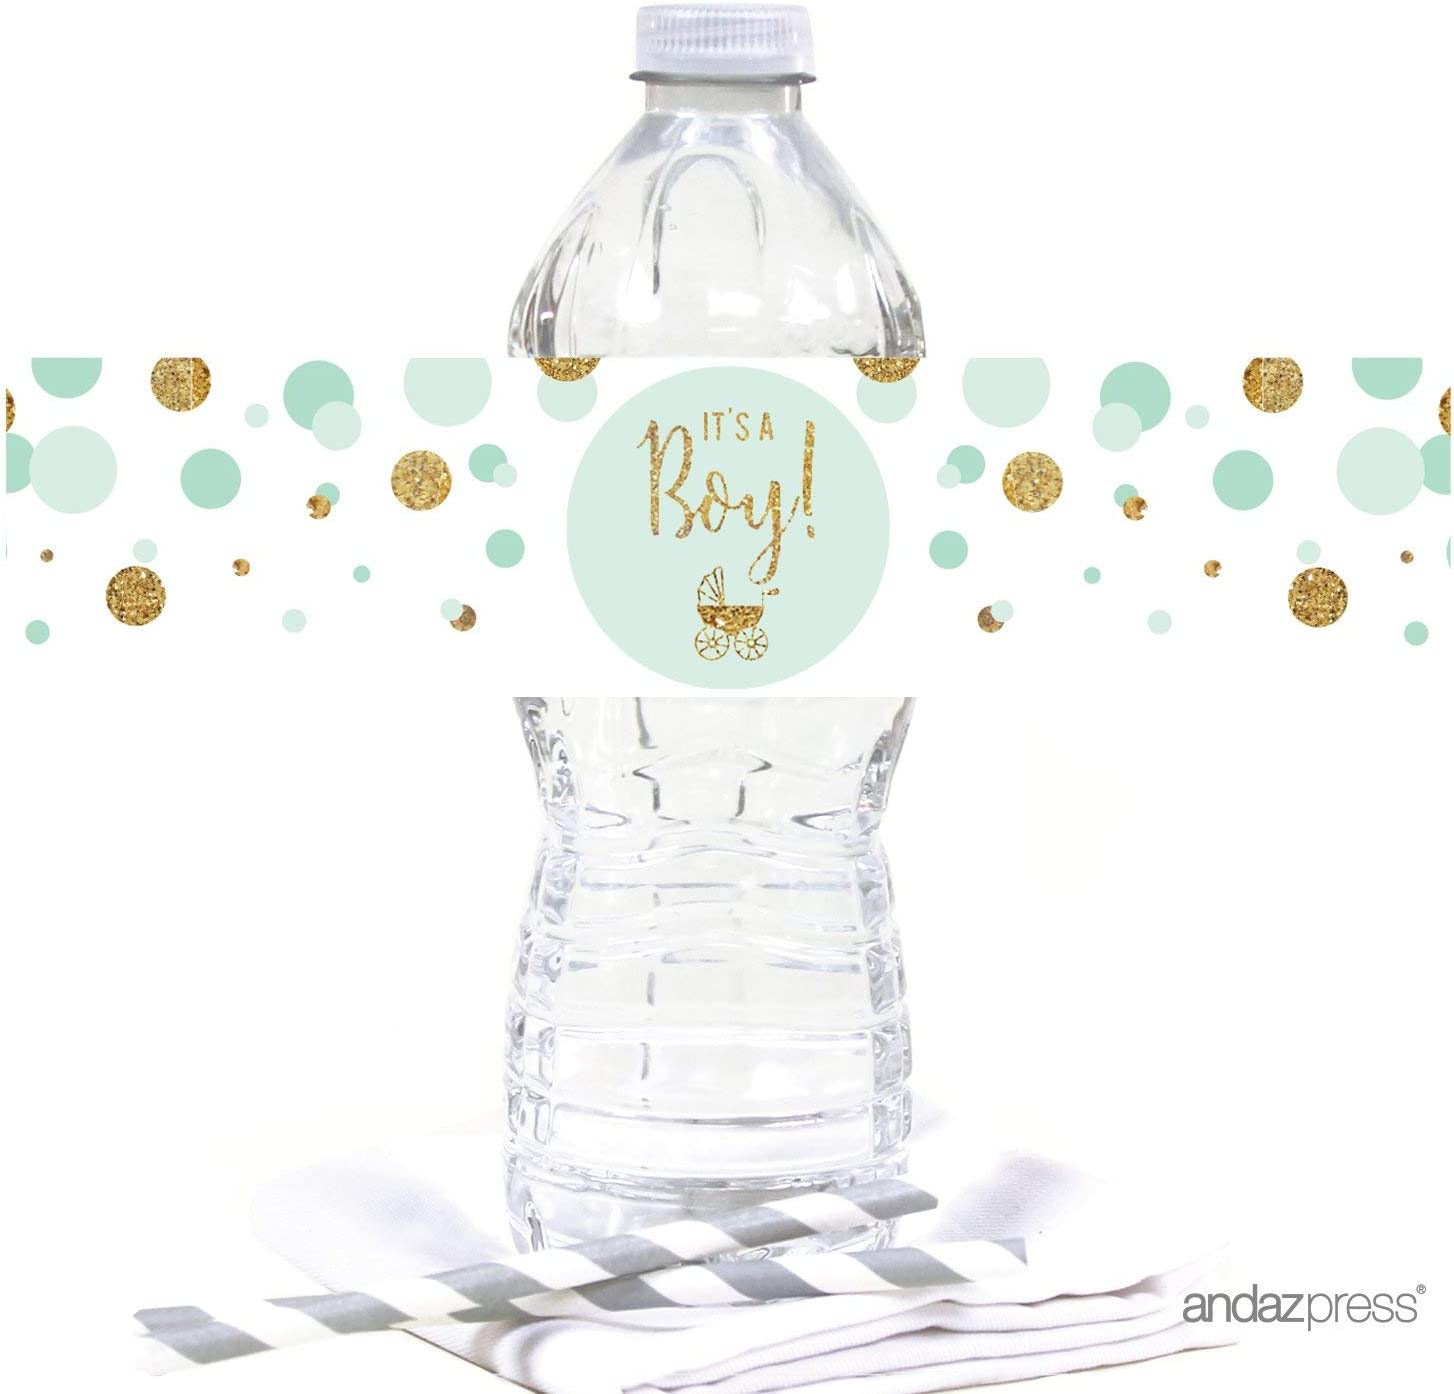 Water Bottle Labels 10-Pack Andaz Press Merry Little Christmas Collection